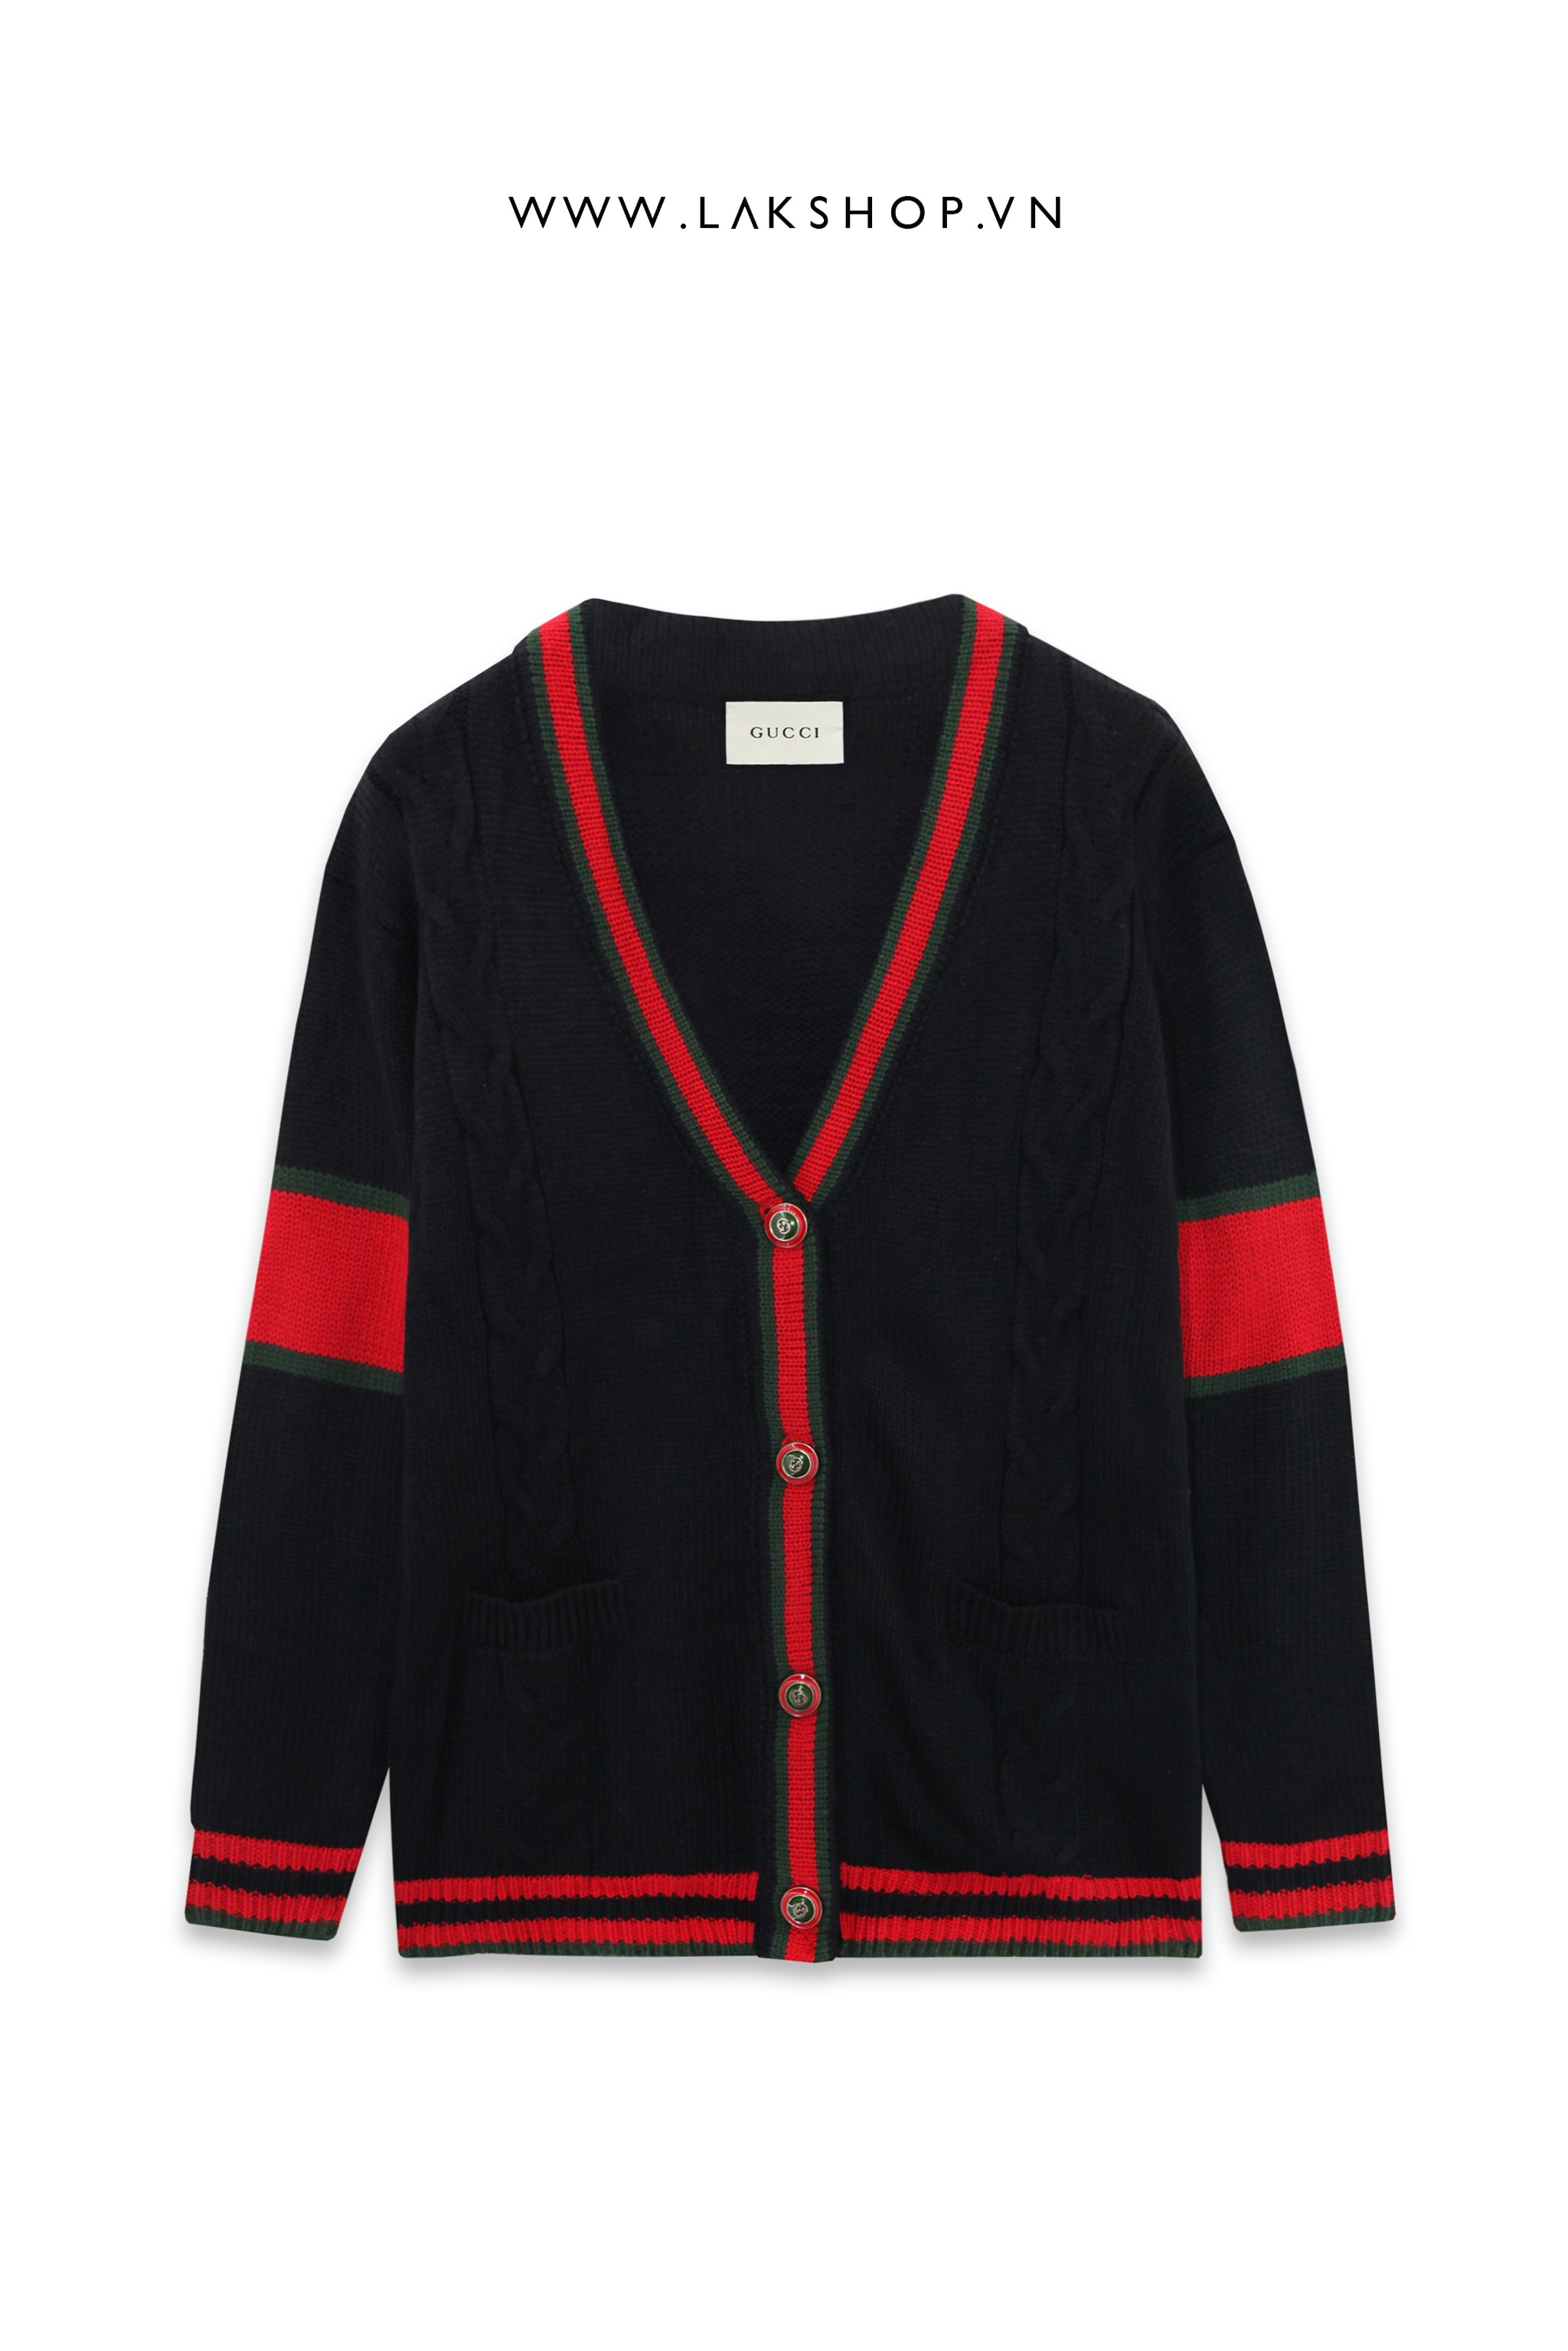 Gucci Oversize Cable Knit Cardigan in Black